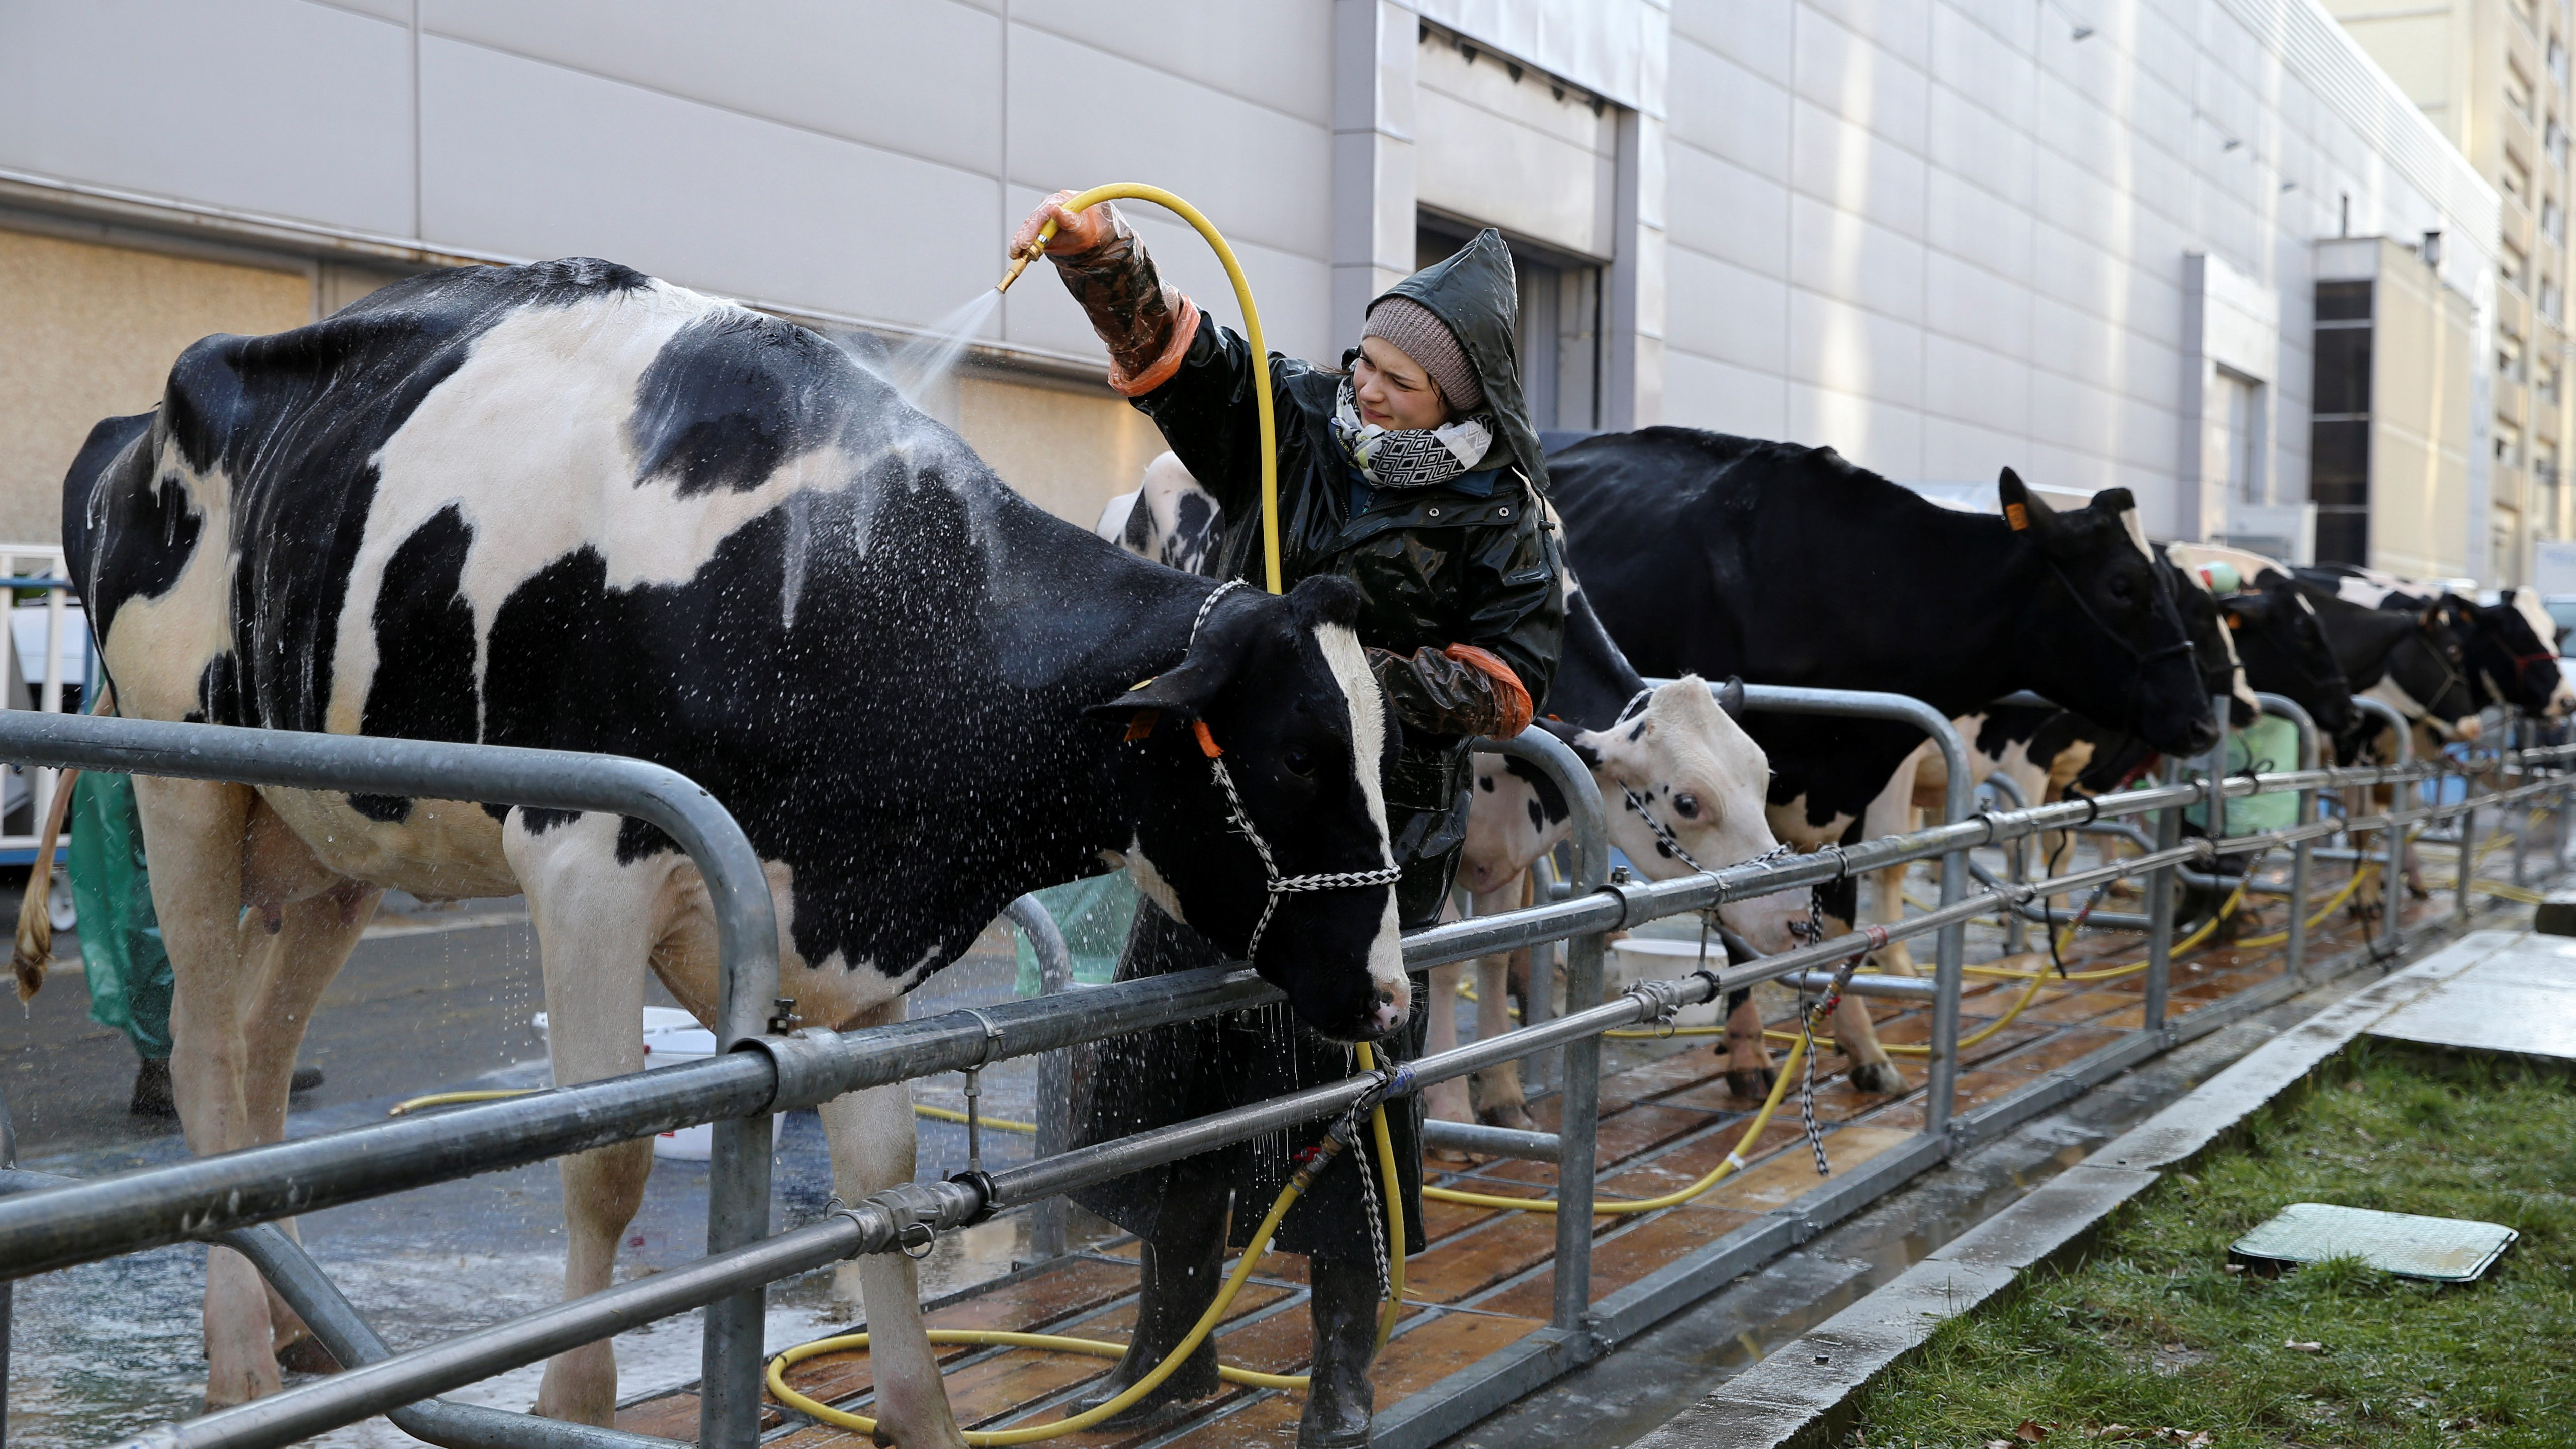 A farmer hoses down a Prim'Holstein milk cow at the 2018 Paris International Agricultural Show as preparations continue on the eve of the opening of the farm show in Paris, France, February 23, 2018.    - RC122E94C020